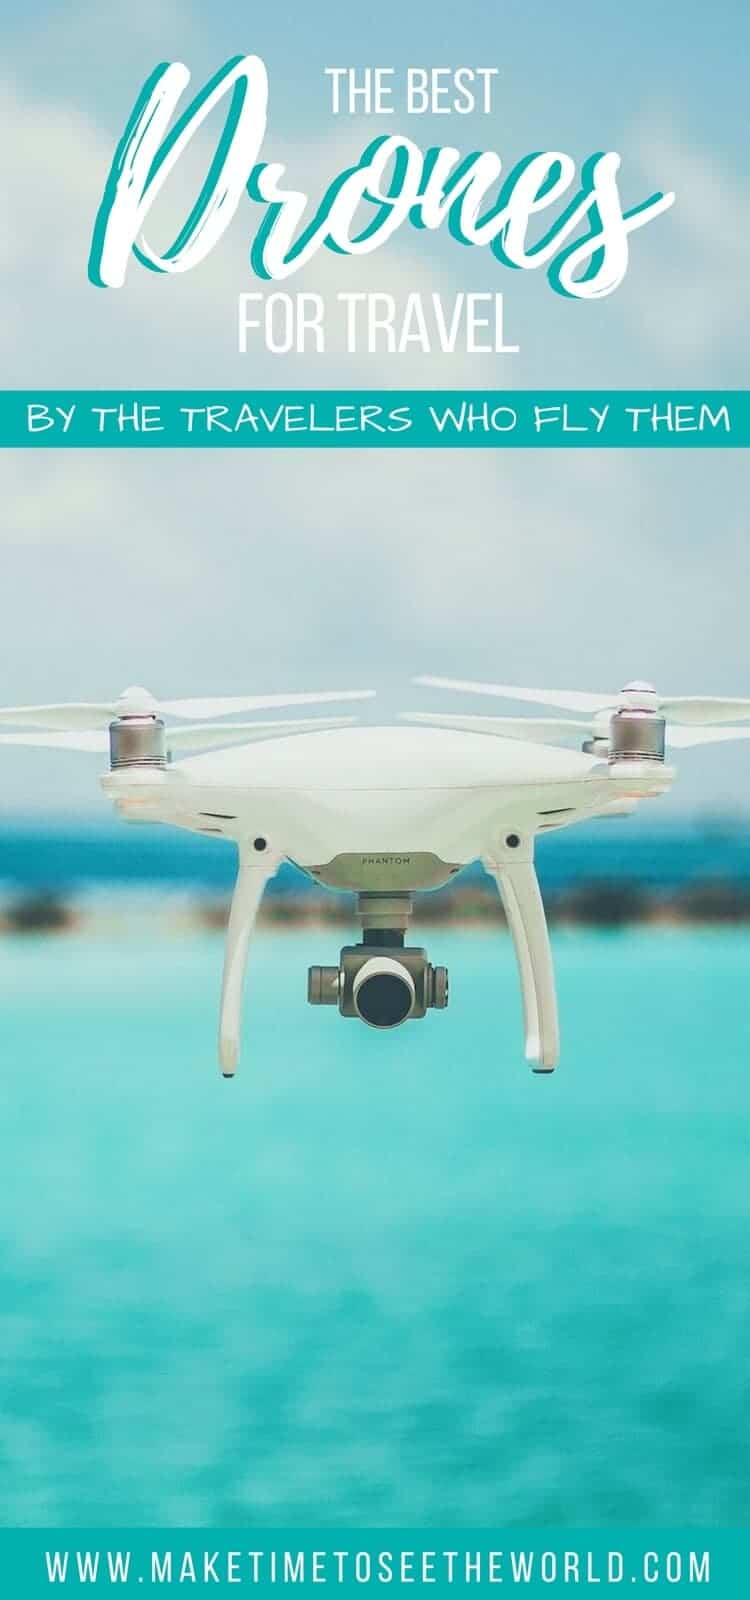 The Best Drones for Travel